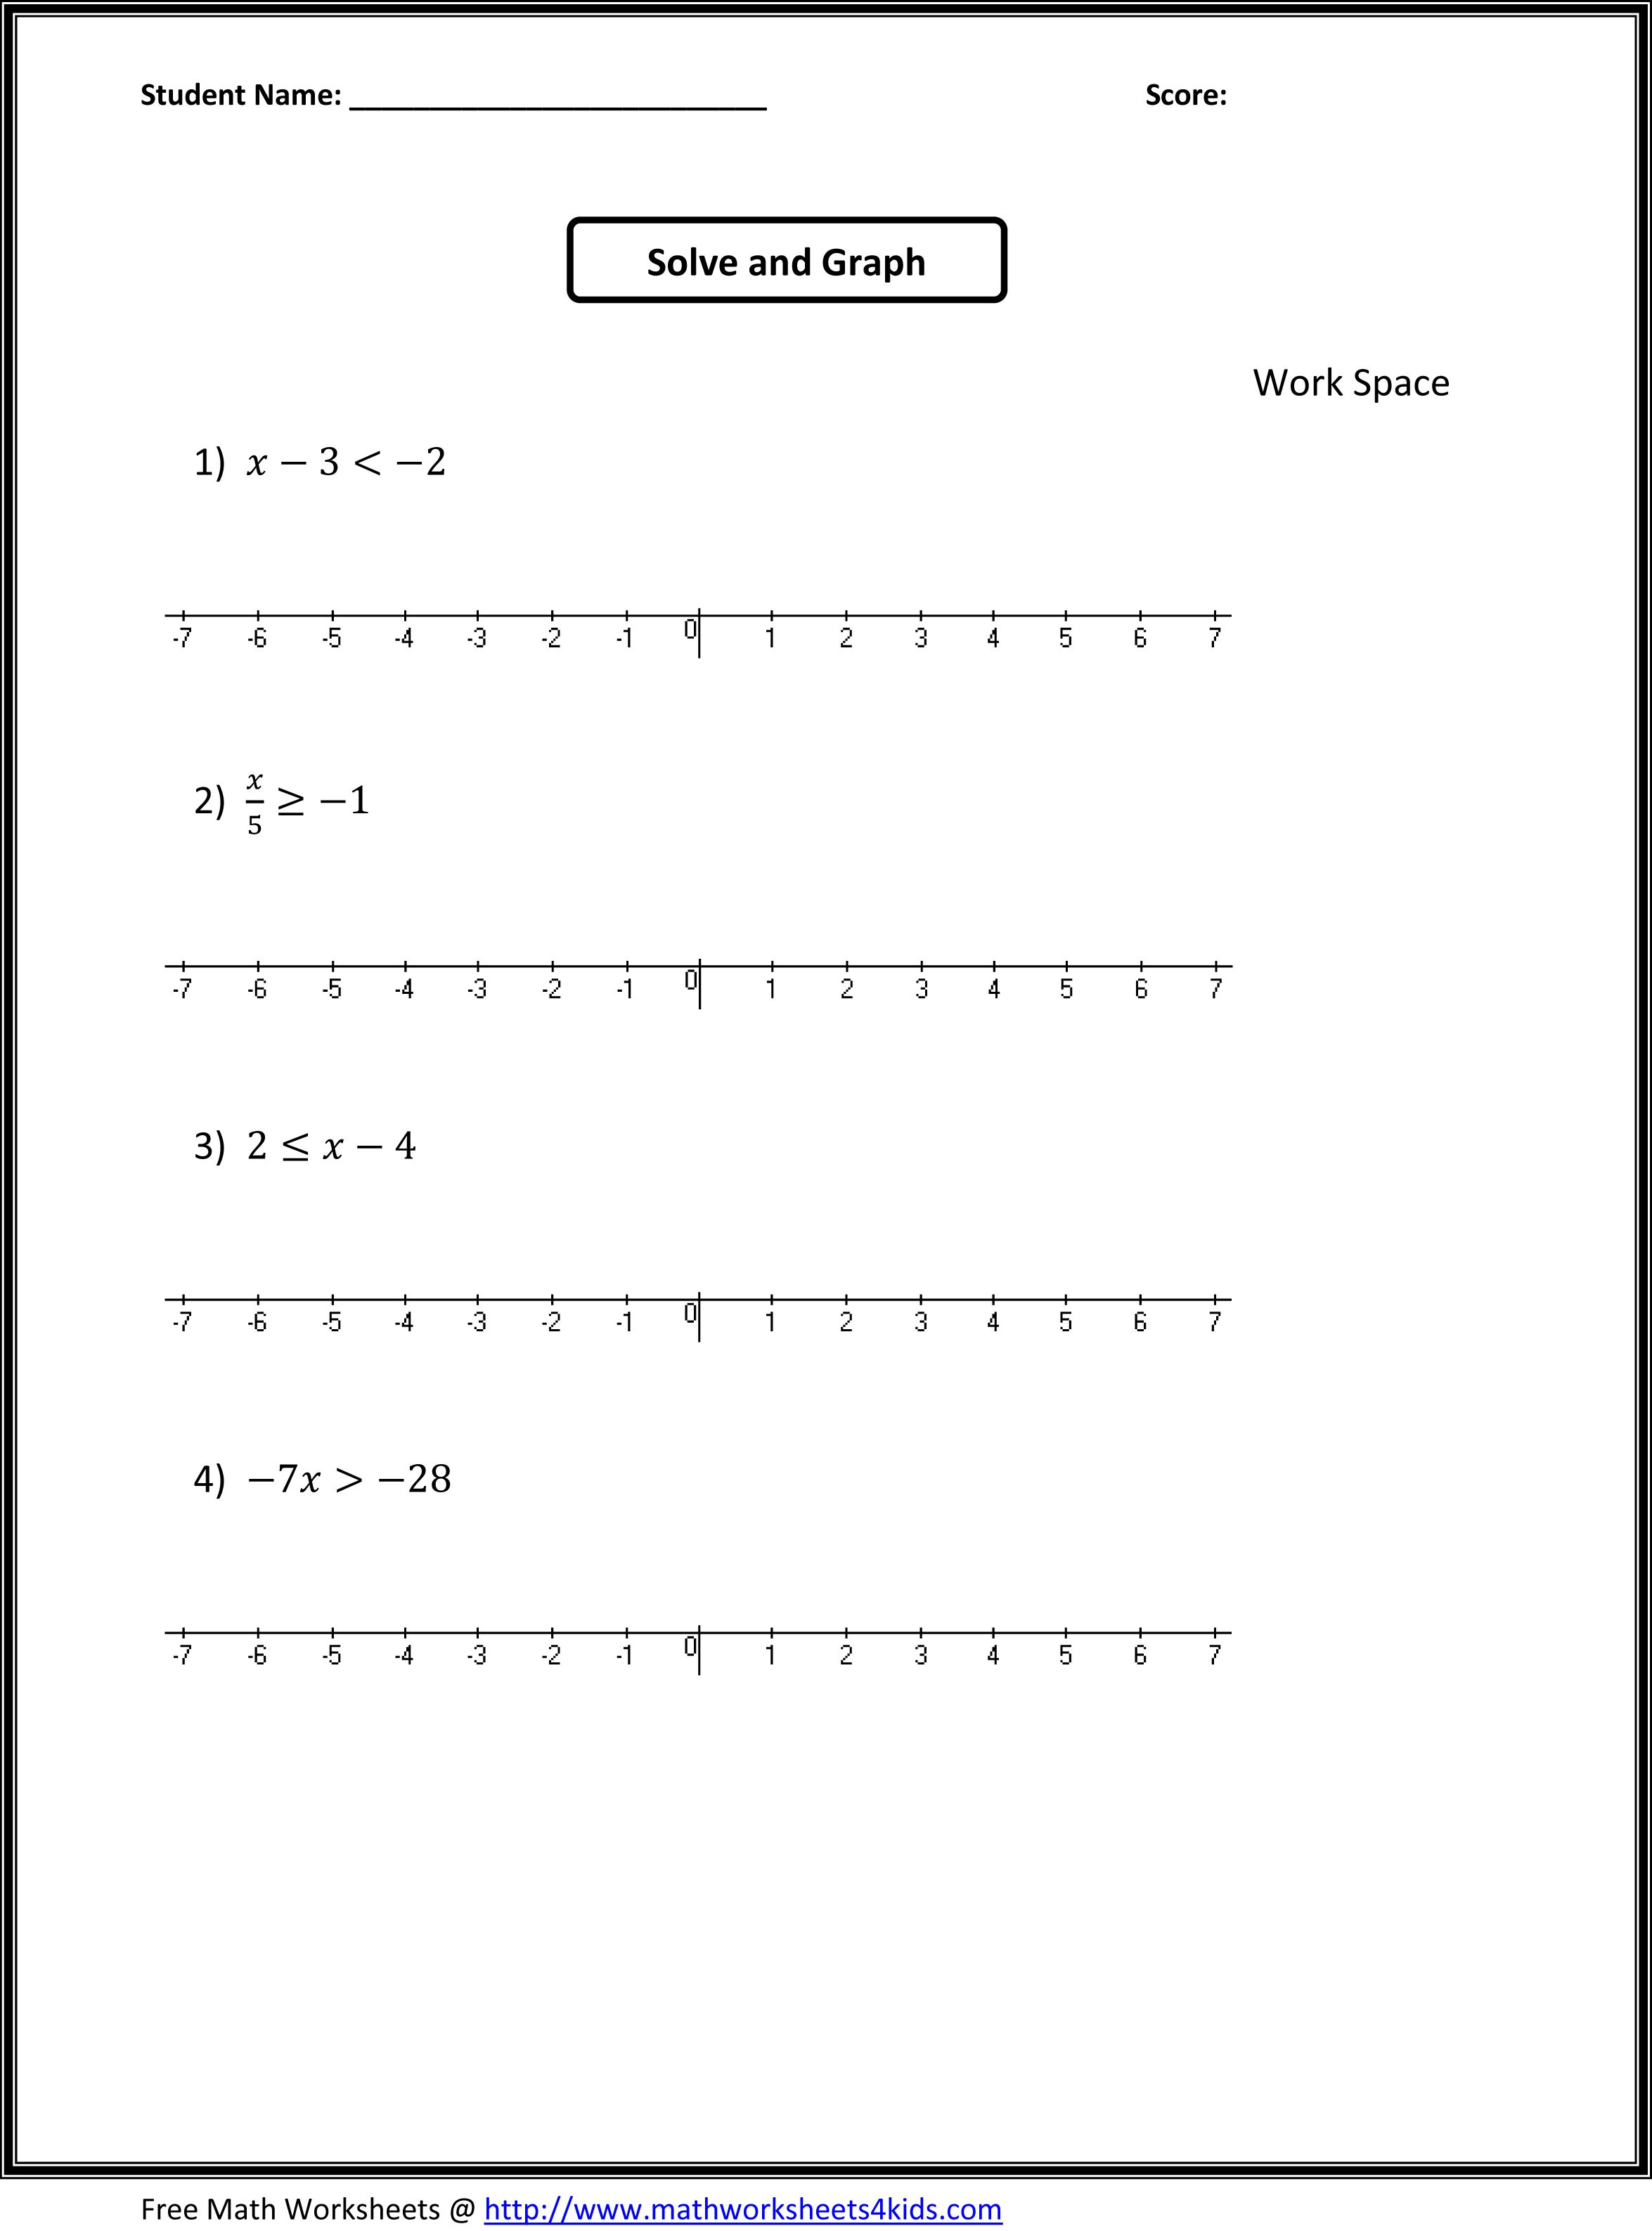 worksheet Box And Whisker Plot Worksheet Pdf 10 images about math on pinterest activities printable worksheets and math